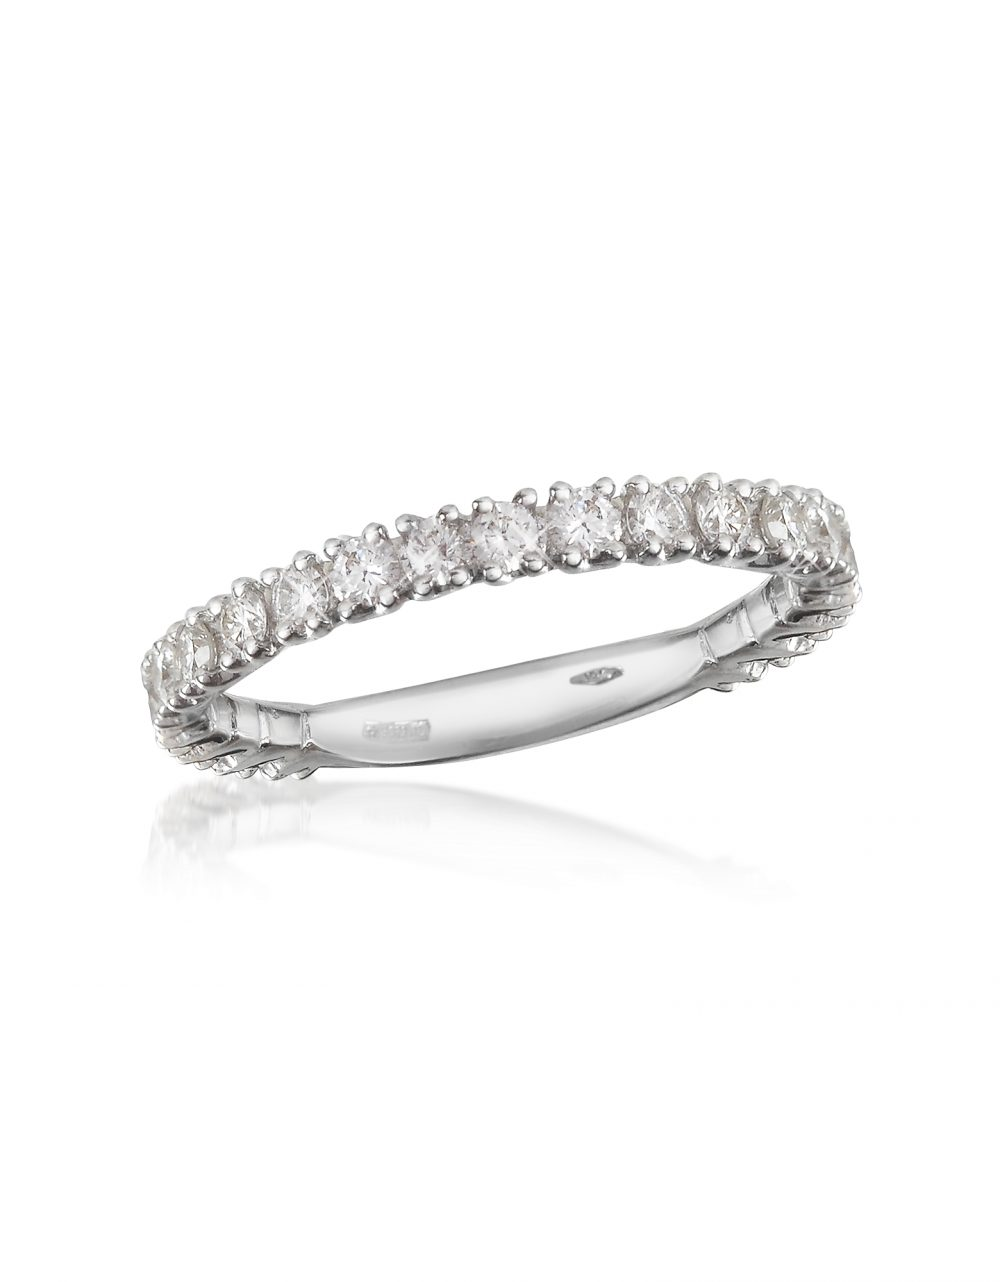 Forzieri Rings 0.74 ct Diamond 18K Gold Eternity Band